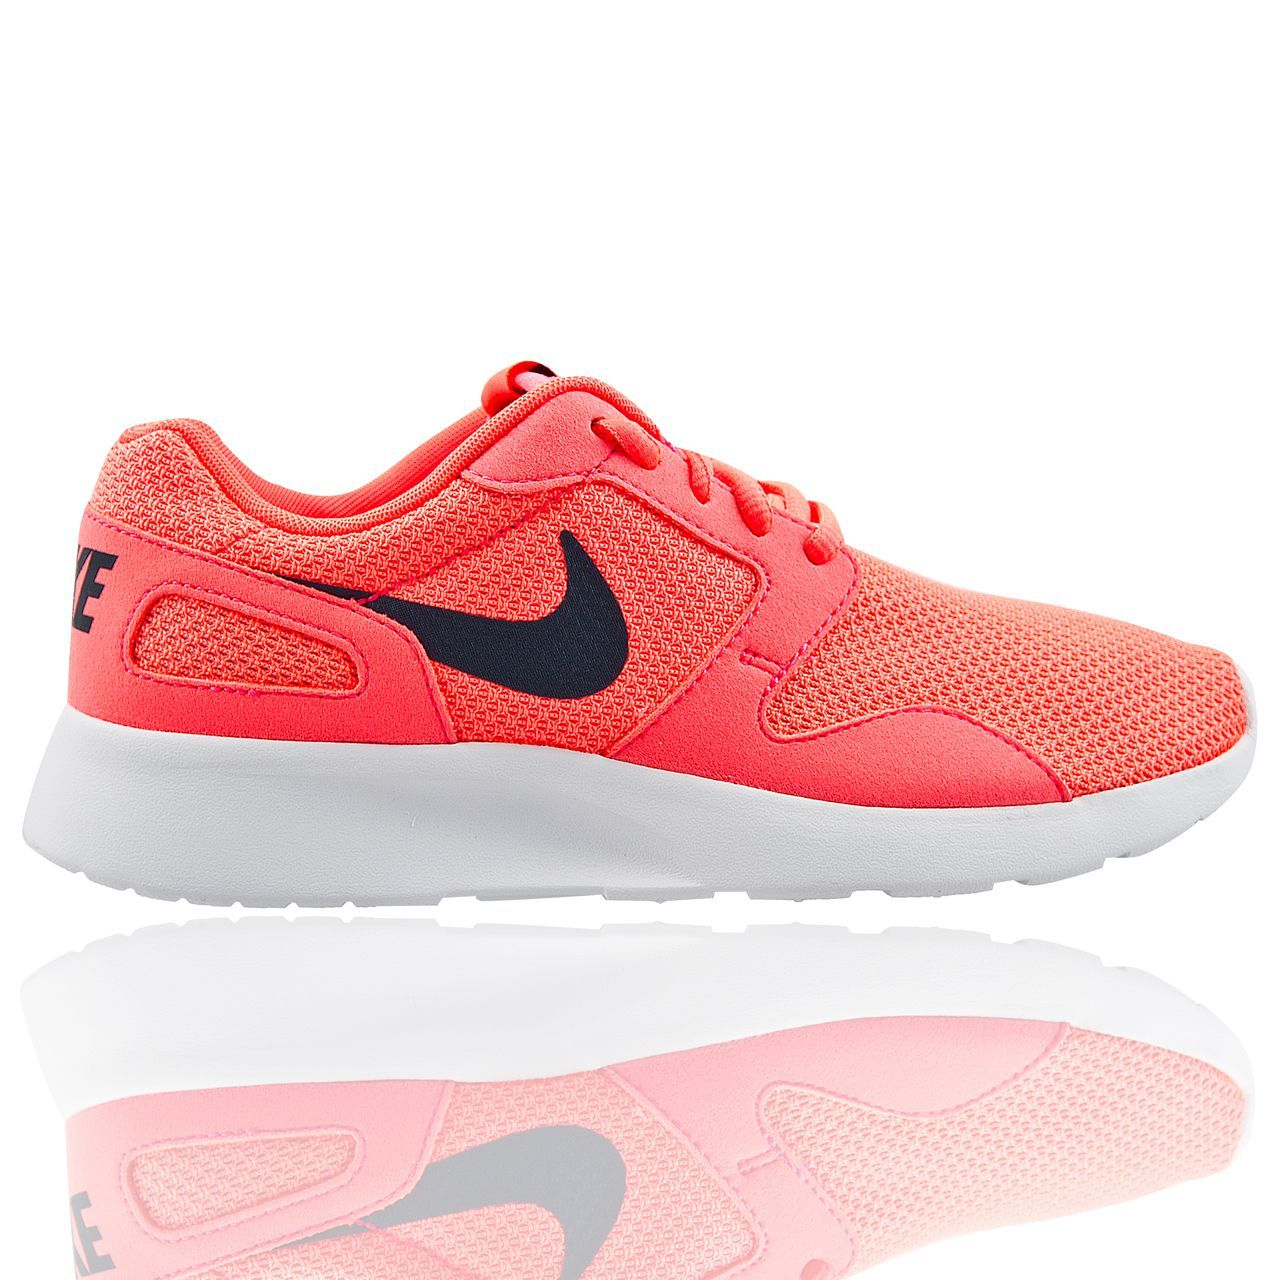 Home › Nike › Nike Flyknit Lunar Women's Running Shoe Pink , . Runner  Sports about Nike shoes, weight loss, & Under Armour gym wear, NI.